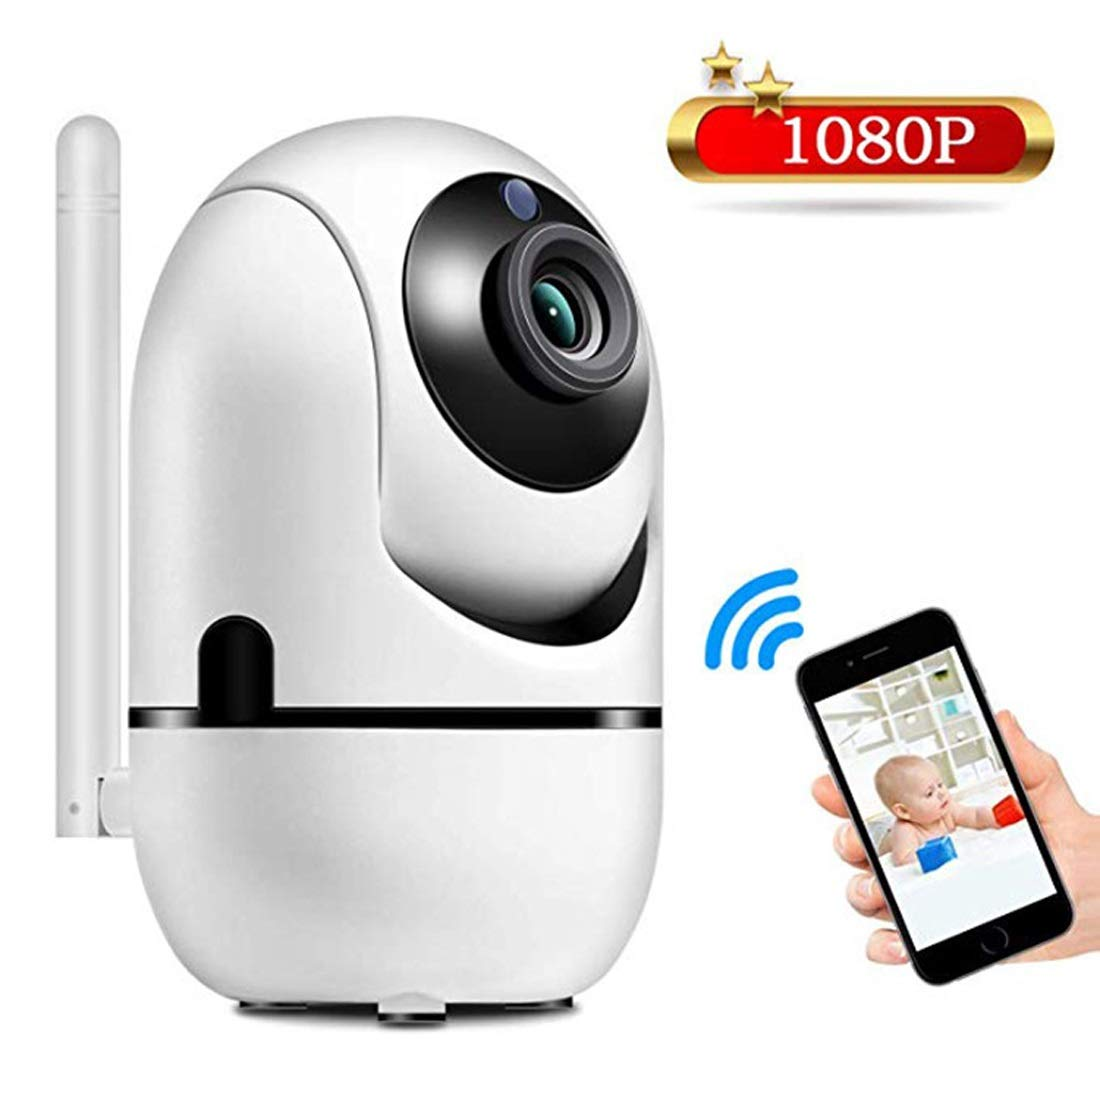 Carriemeow Smart Wireless WiFi Mobile Phone Remote Webcam Monitor Set Home Indoor Monitoring HD Night Vision